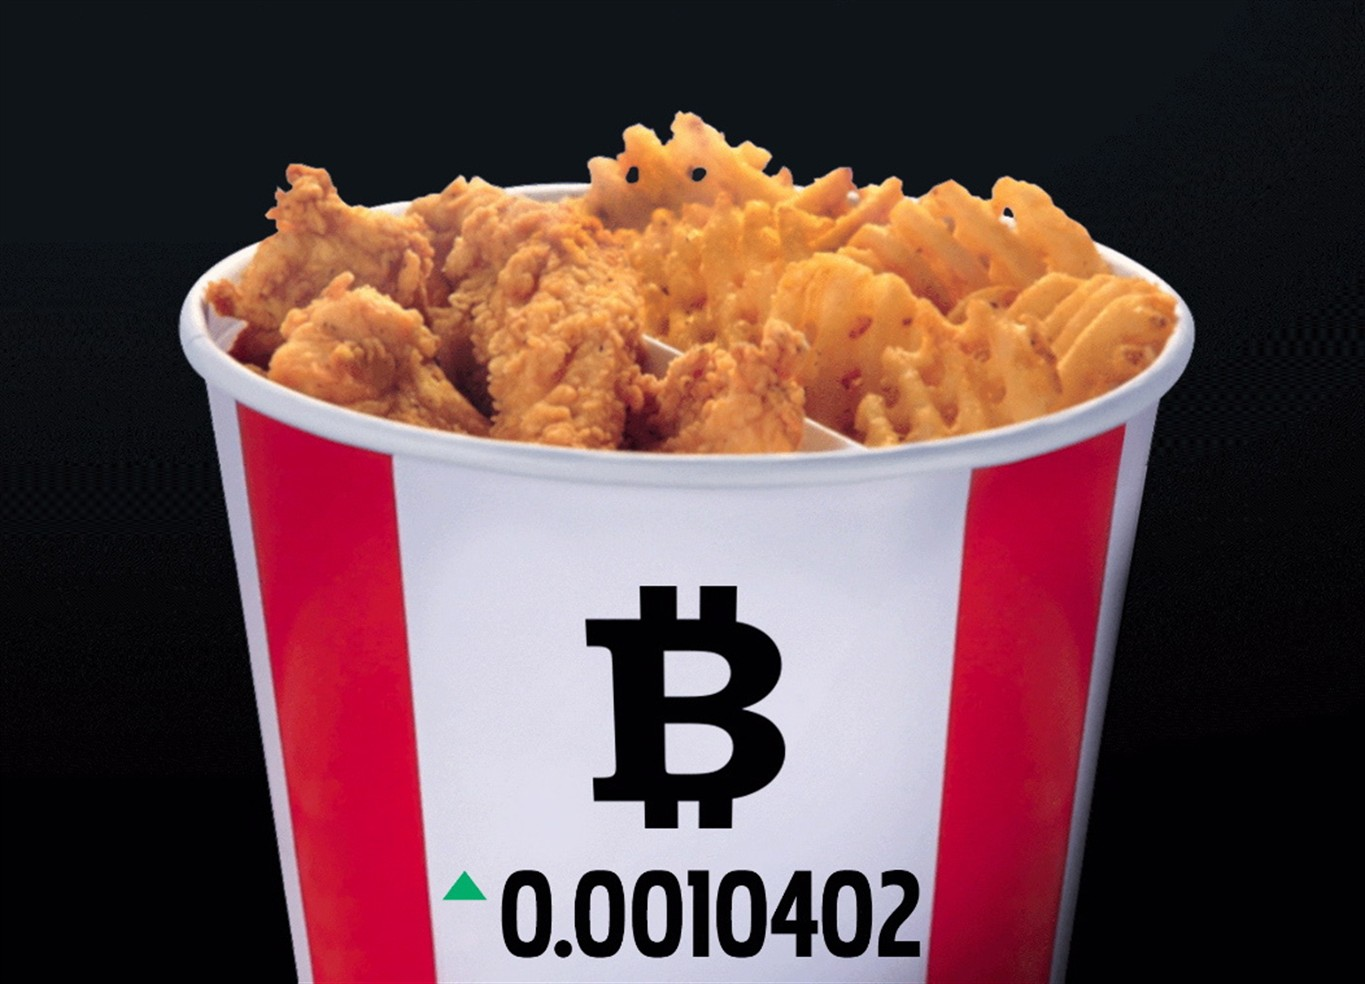 KFC in Canada now accepts Bitcoin